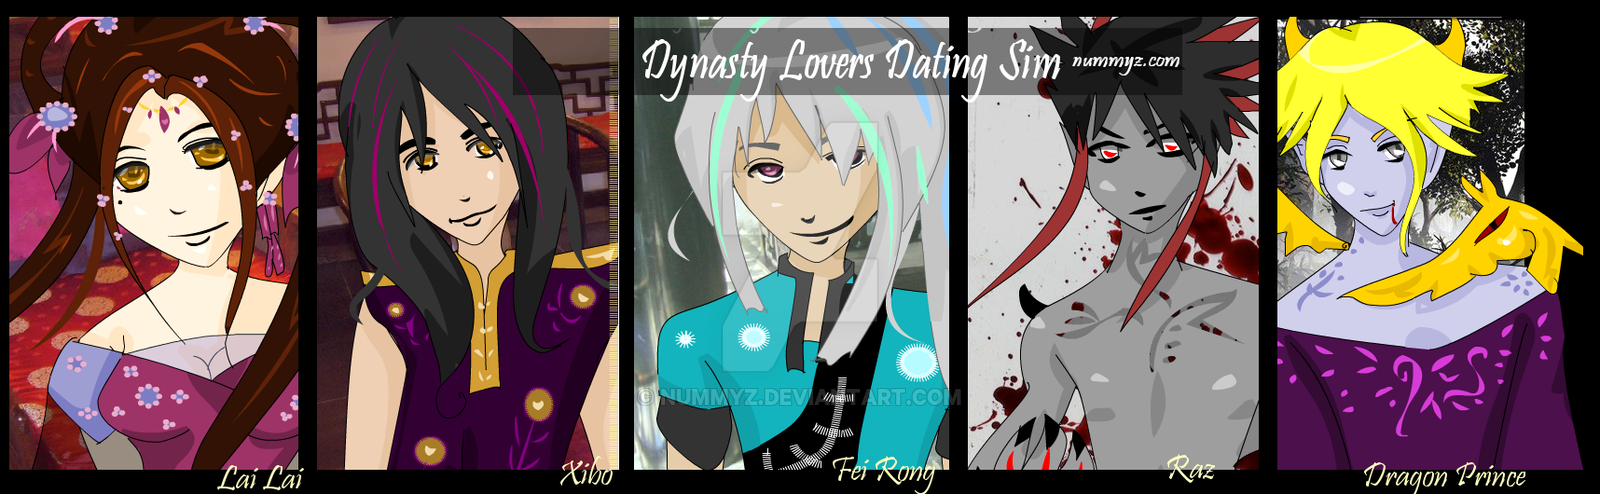 online-dating-dynasty